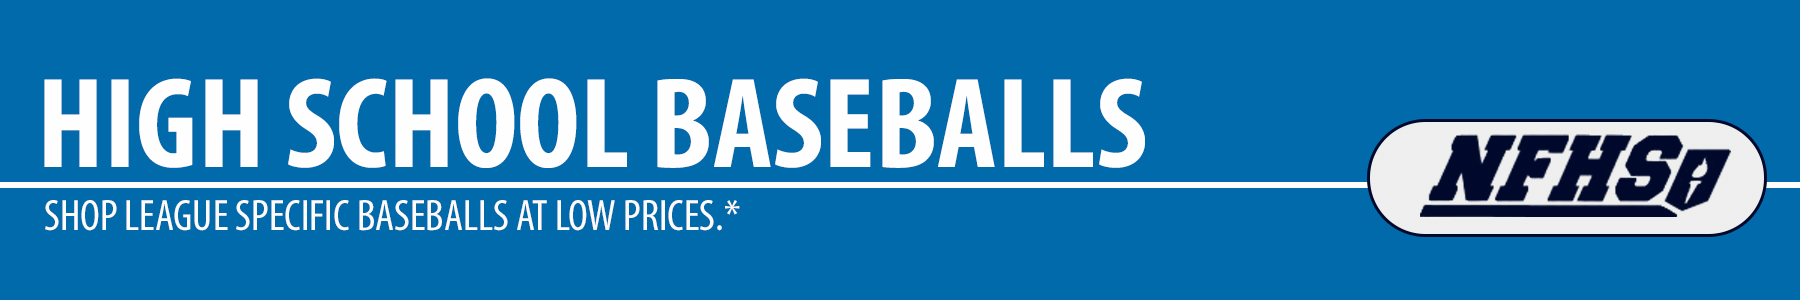 High School Baseballs - NFHS High School Baseballs - High School Practice Baseballs - High School Game Baseballs